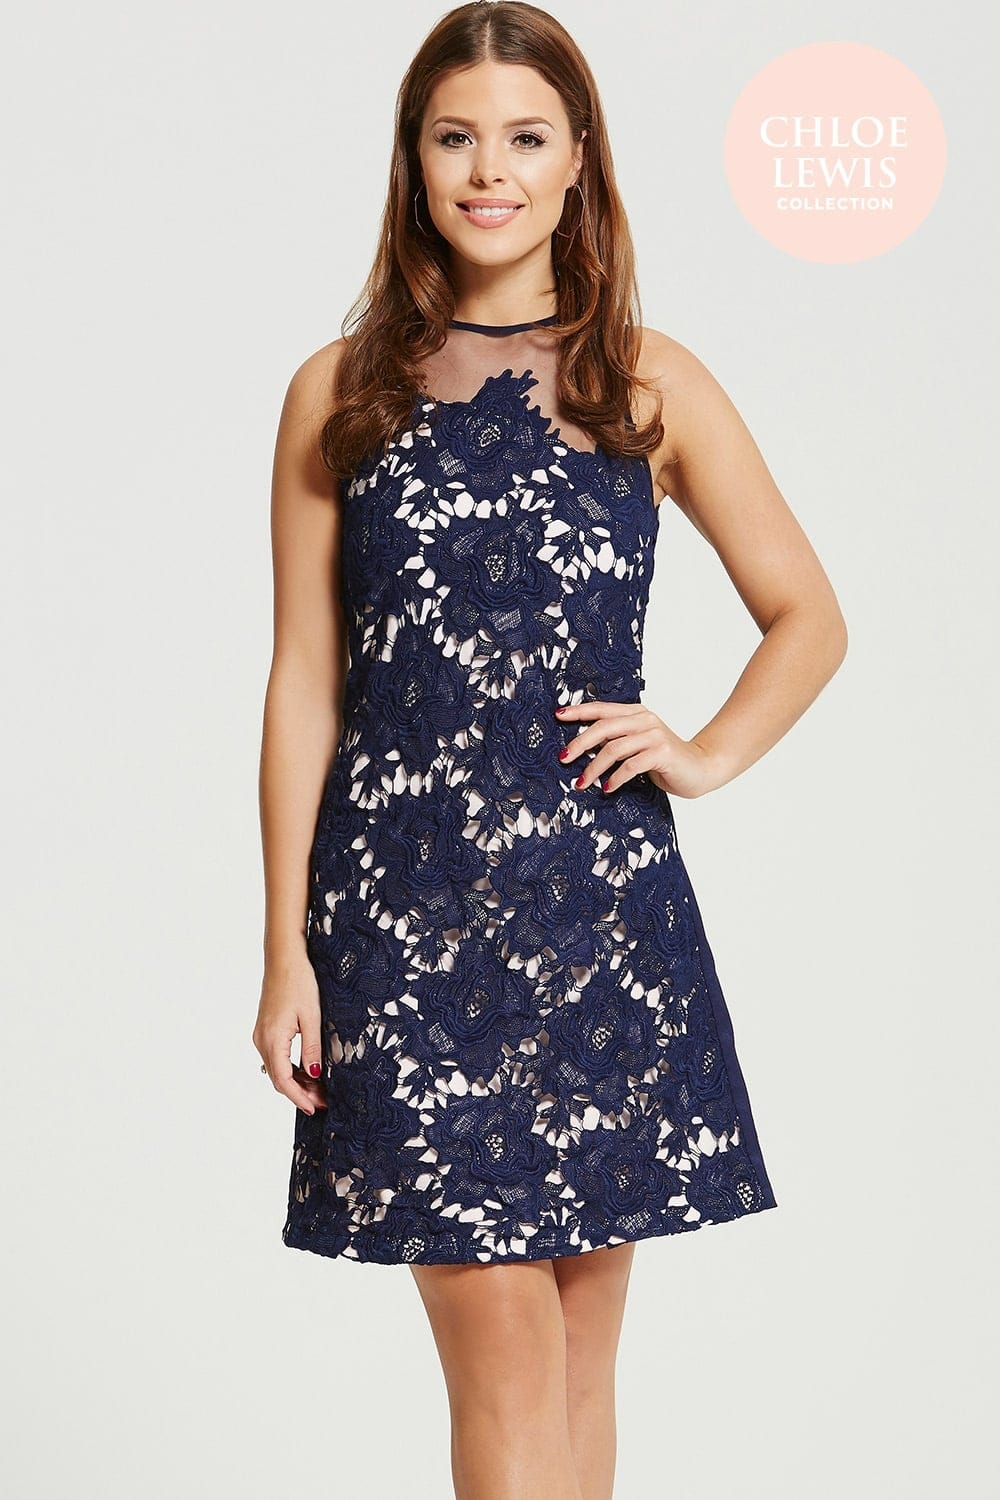 Chloe Lewis Collection Navy Crochet Sheer Shift Dress